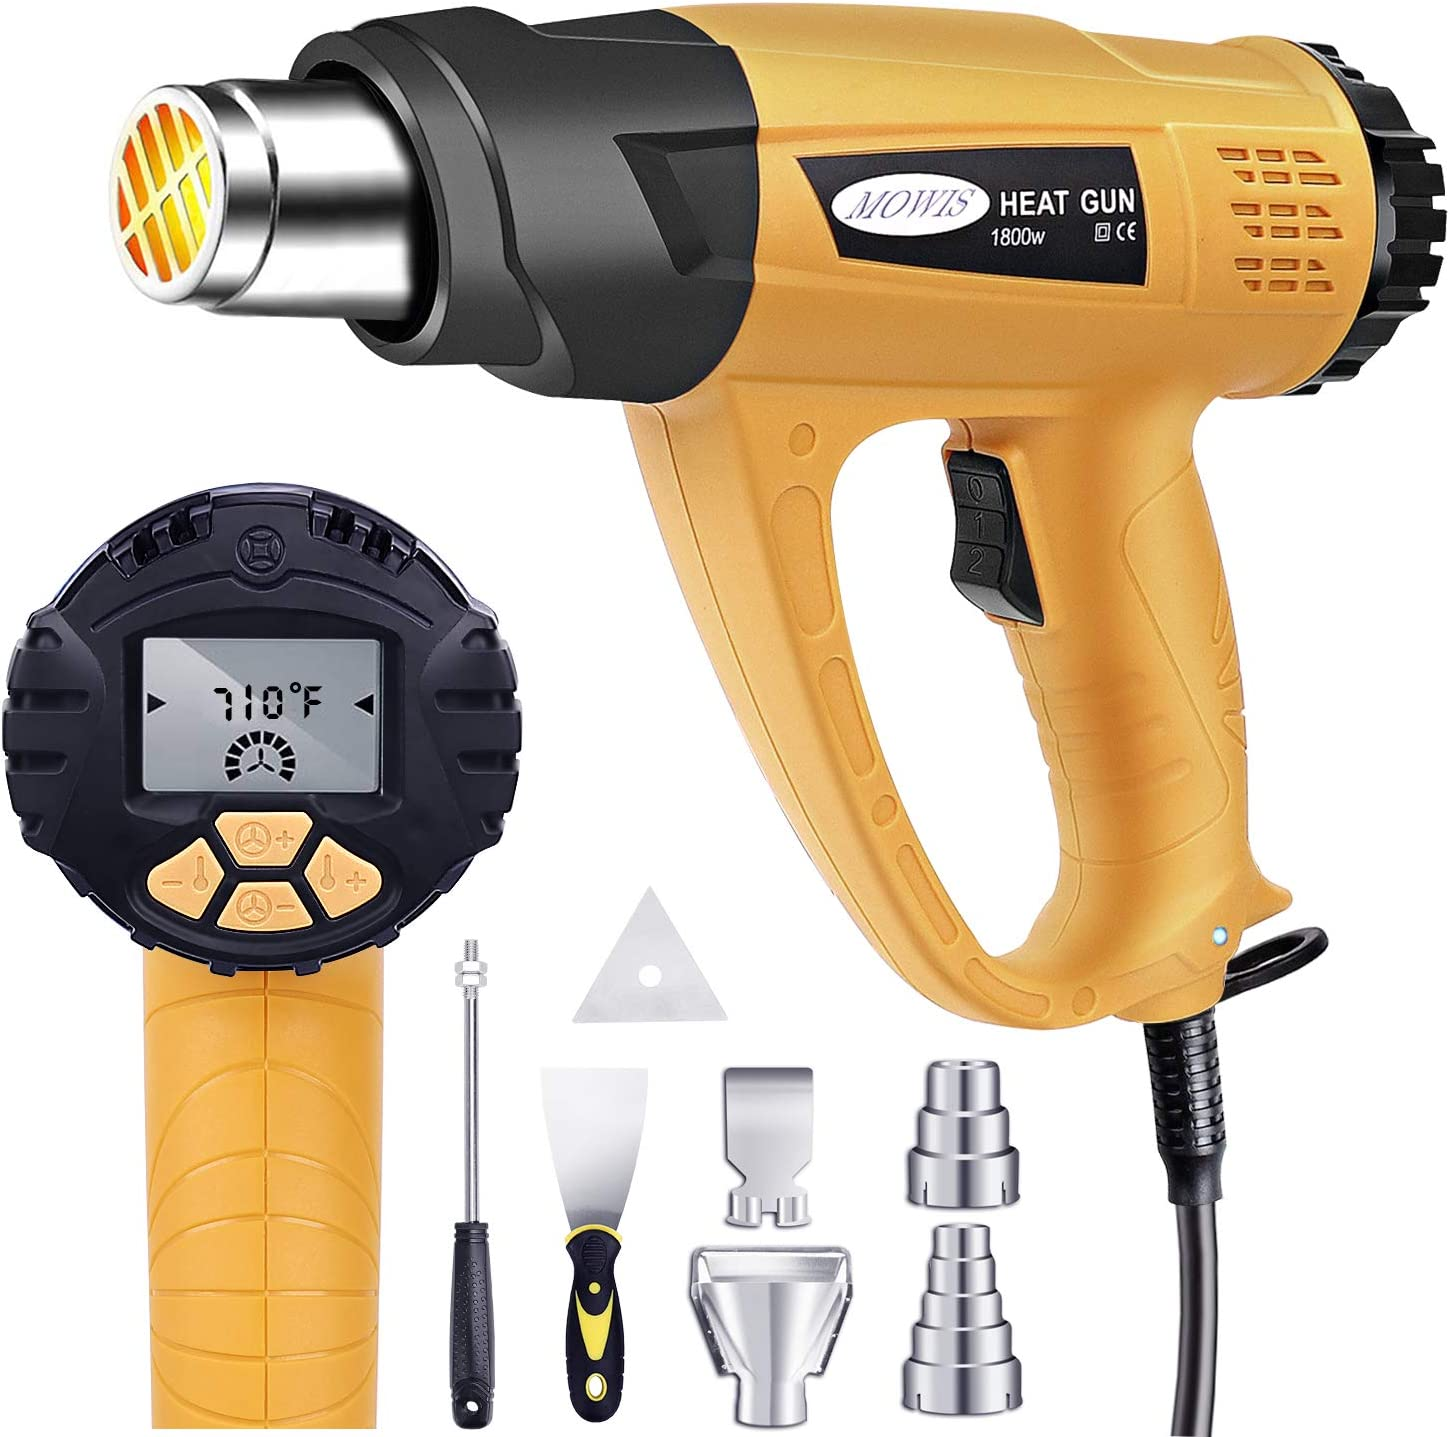 with 4 Nozzle Attachments Heat Gun Mowis 1800W Heavy Duty Hot Air Shrink Gun